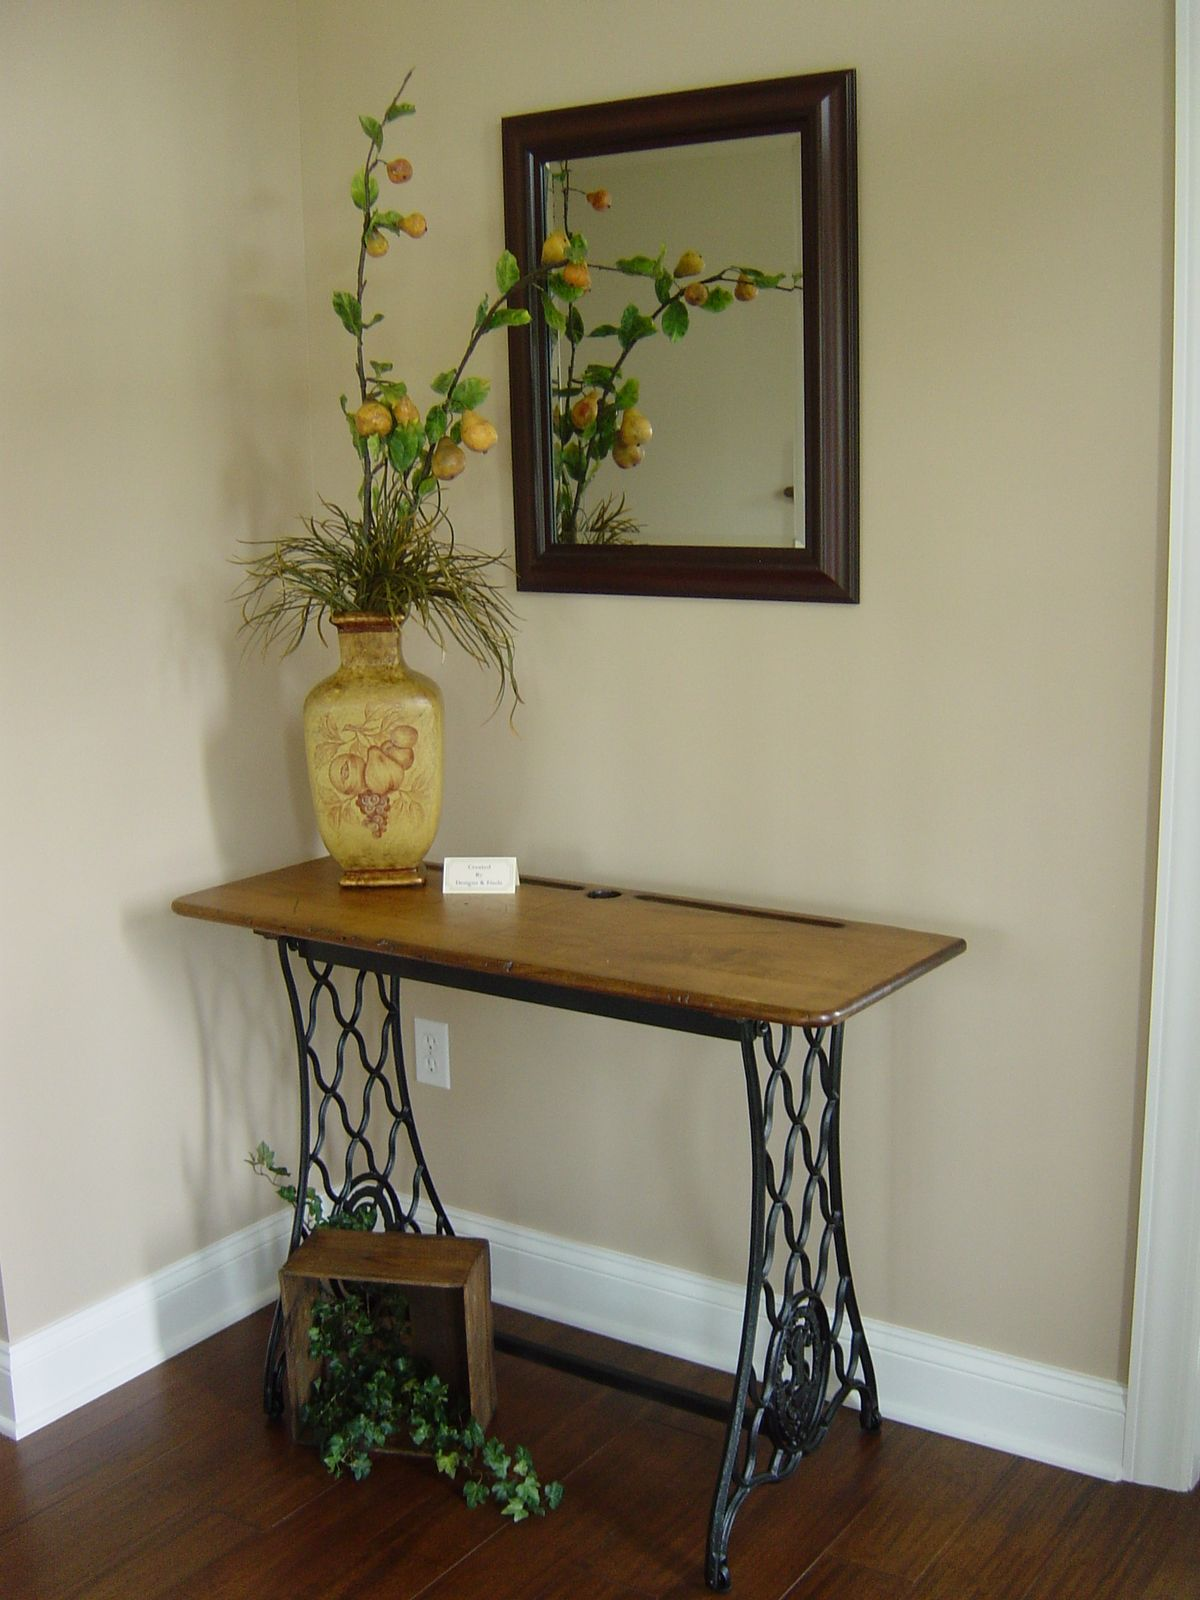 D Table Repurposed Sewing Machine Base With An Old